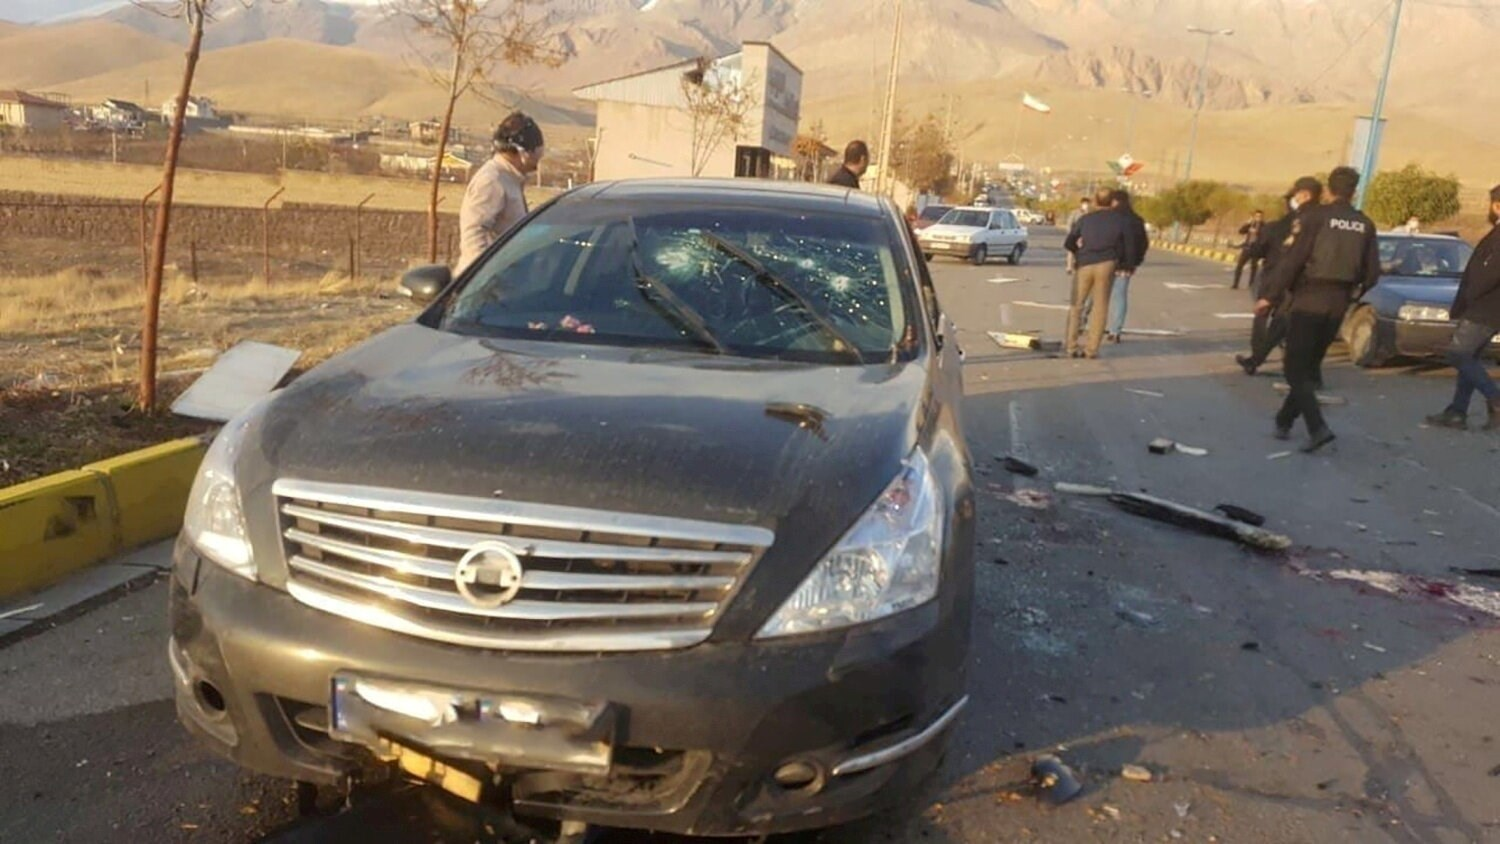 Cameras in this vehicle identified Fakhrizadeh and his position in the car sending this information back to the remote sniper